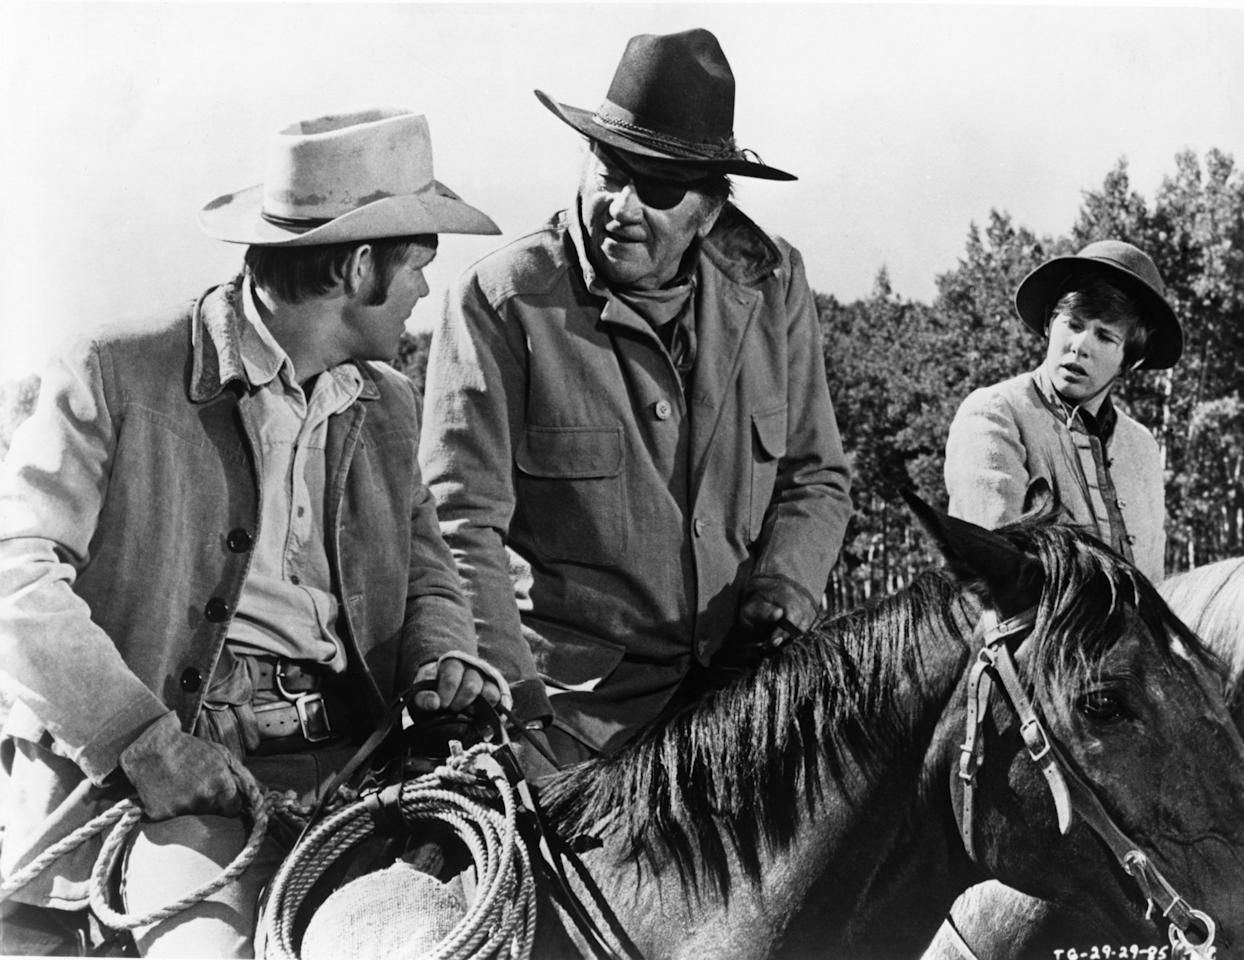 <p>Both the 1969 John Wayne classic and the 2010 Jeff Bridges' remake of this classic Western are streaming on Hulu. If you are a big fan of the genre, watch both and compare the films. Want even more John Wayne? <em>Rooster Cogburn</em> is streaming on Amazon, pitting Wayne against Katharine Hepburn.</p>